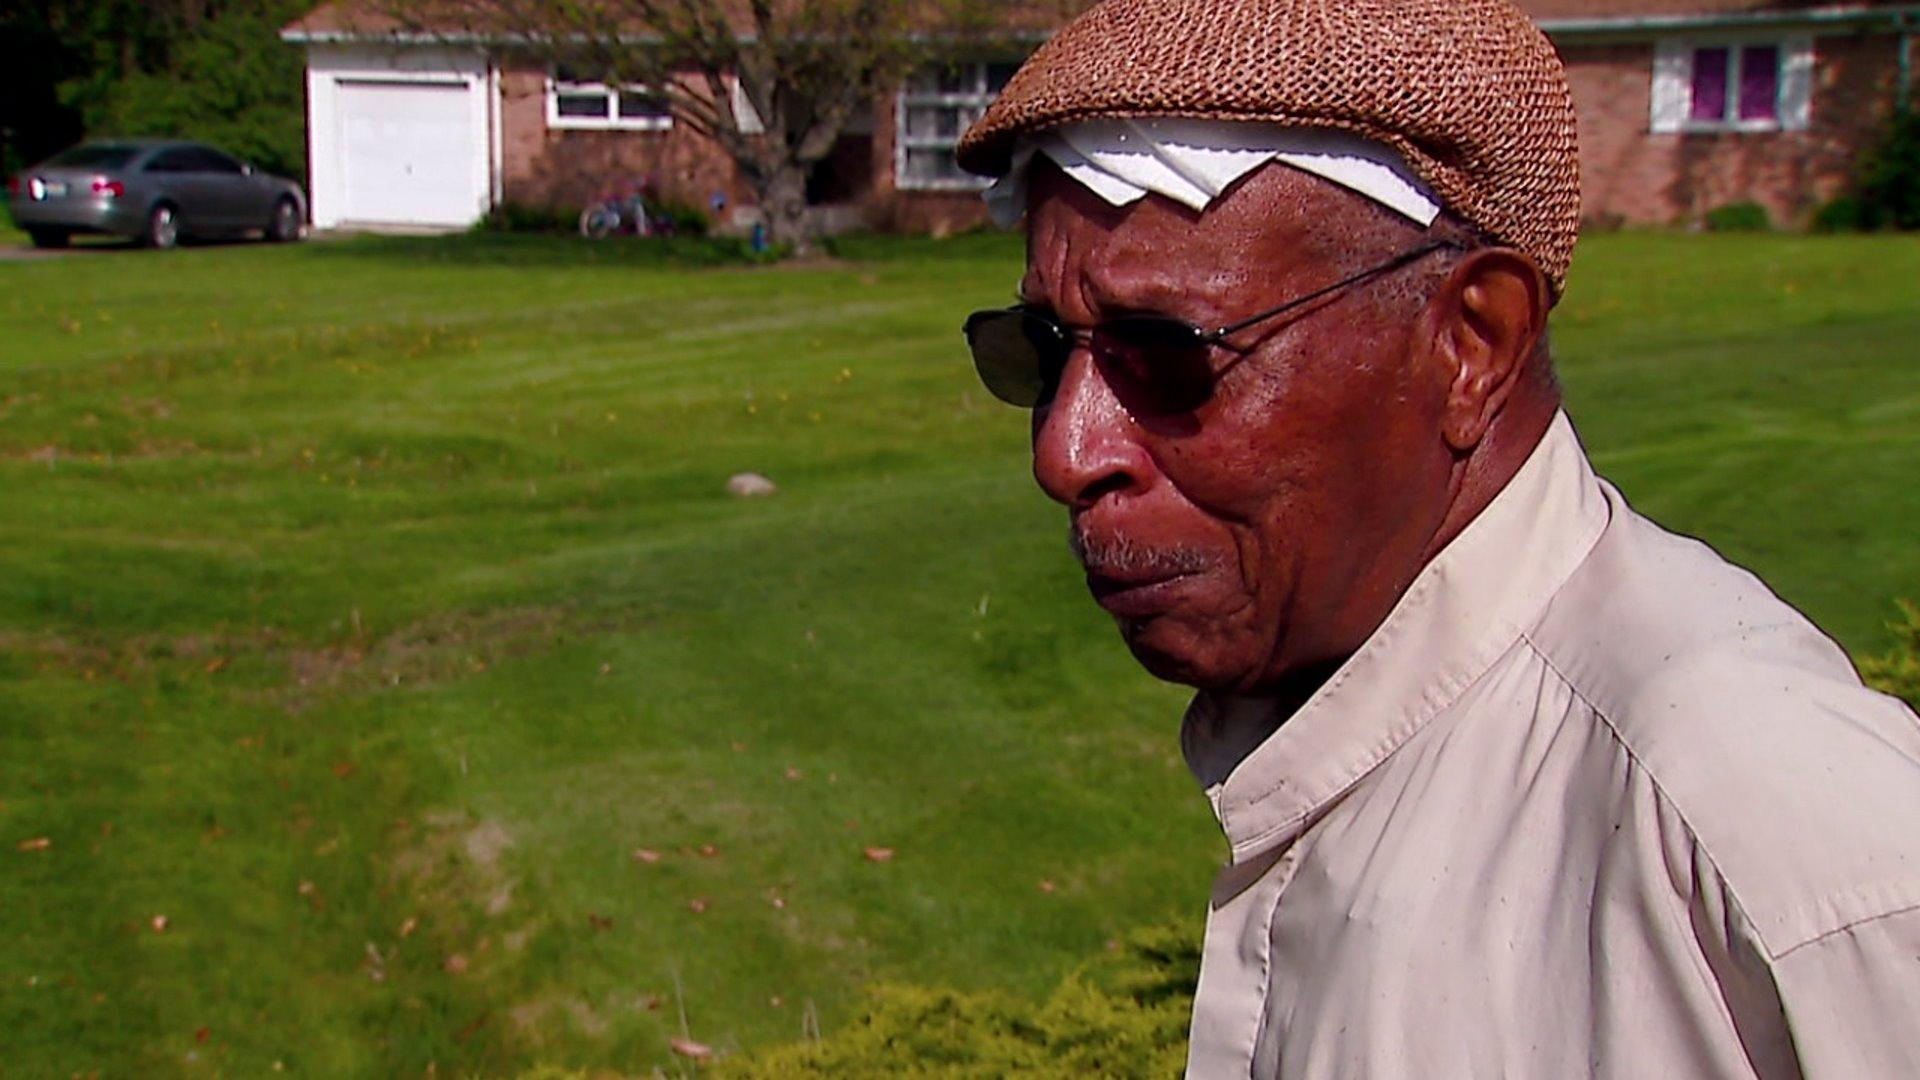 90-Year-Old Man Says He's Been Dealing With Flooded Yard for Years